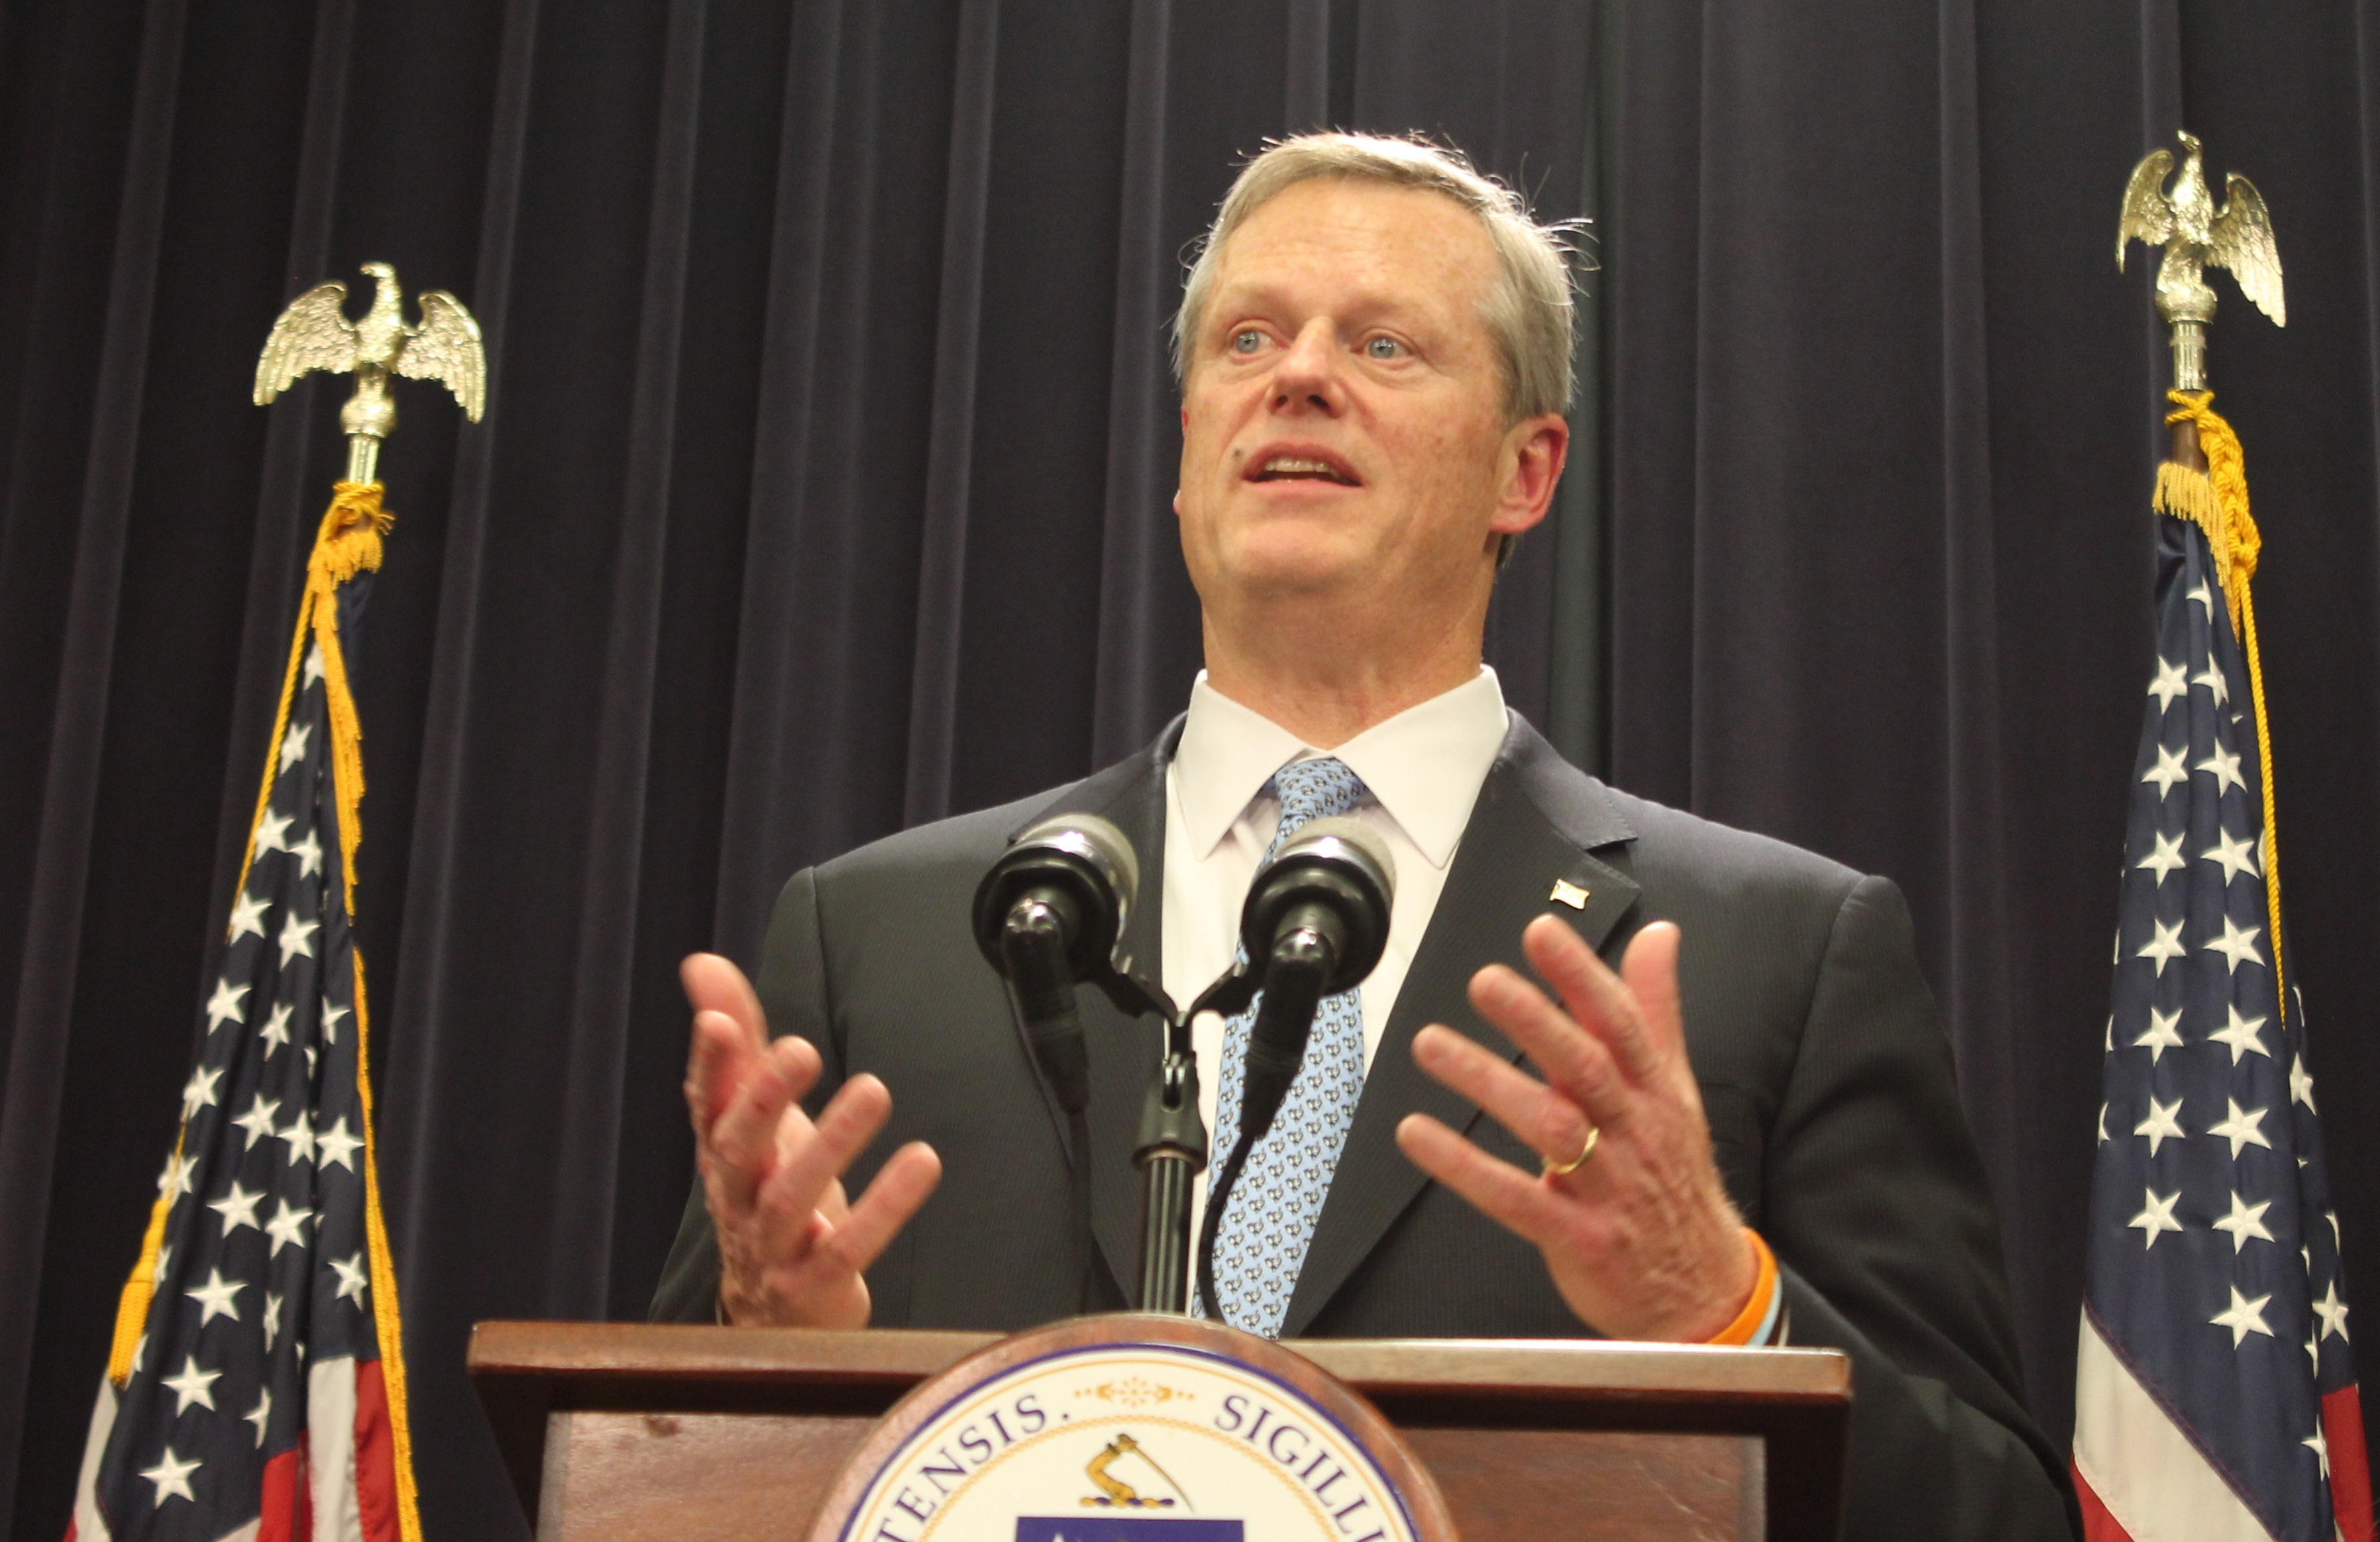 we ve had a fentanyl bill pending in the legislature for two years gov charlie baker said fentanyl is now present in 81 percent of the deaths in